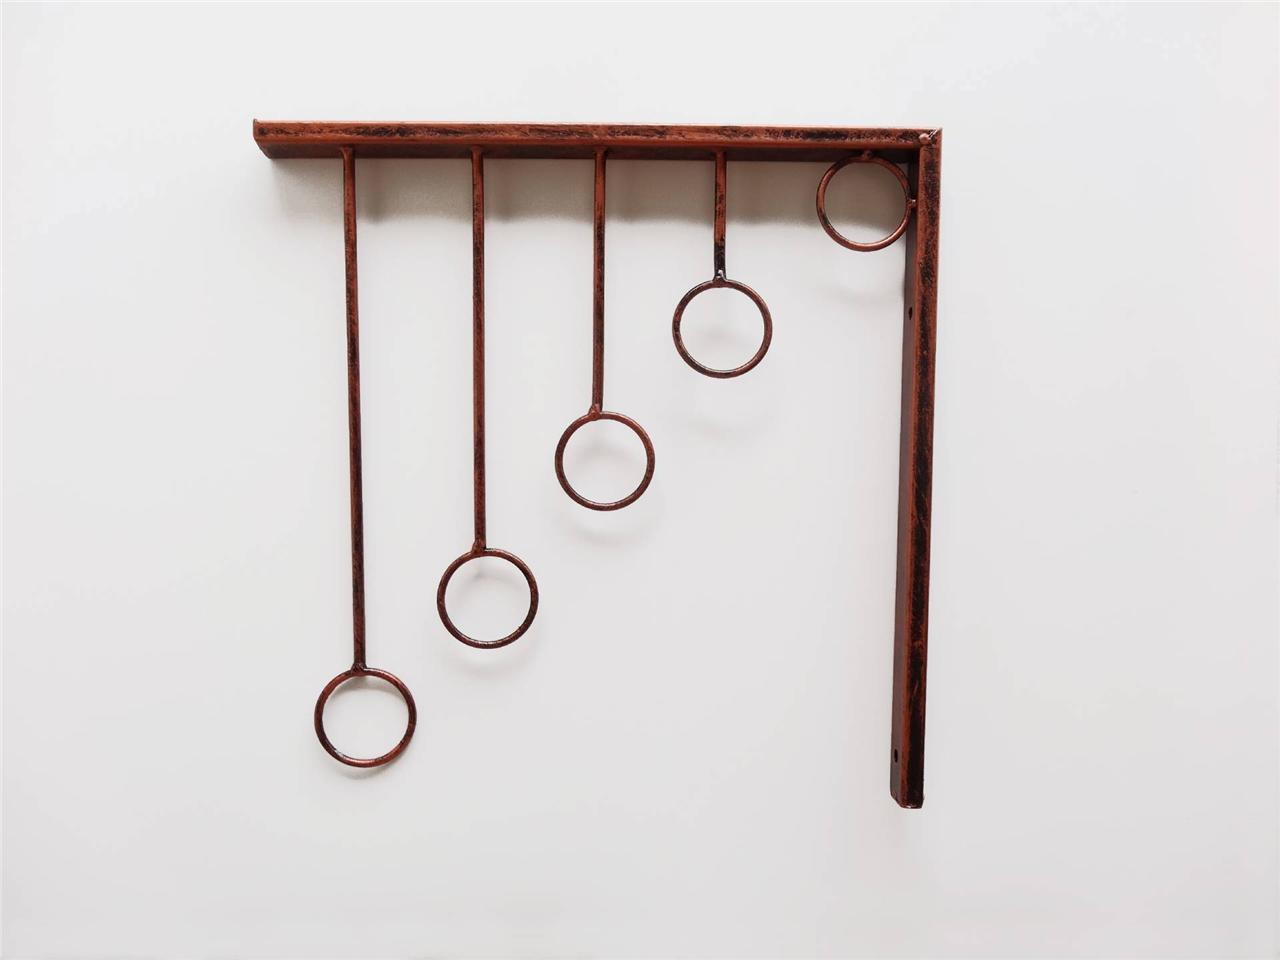 Clothes Hanger Wall Wall Mounted Metal Iron Clothes Hanger Rack Holder